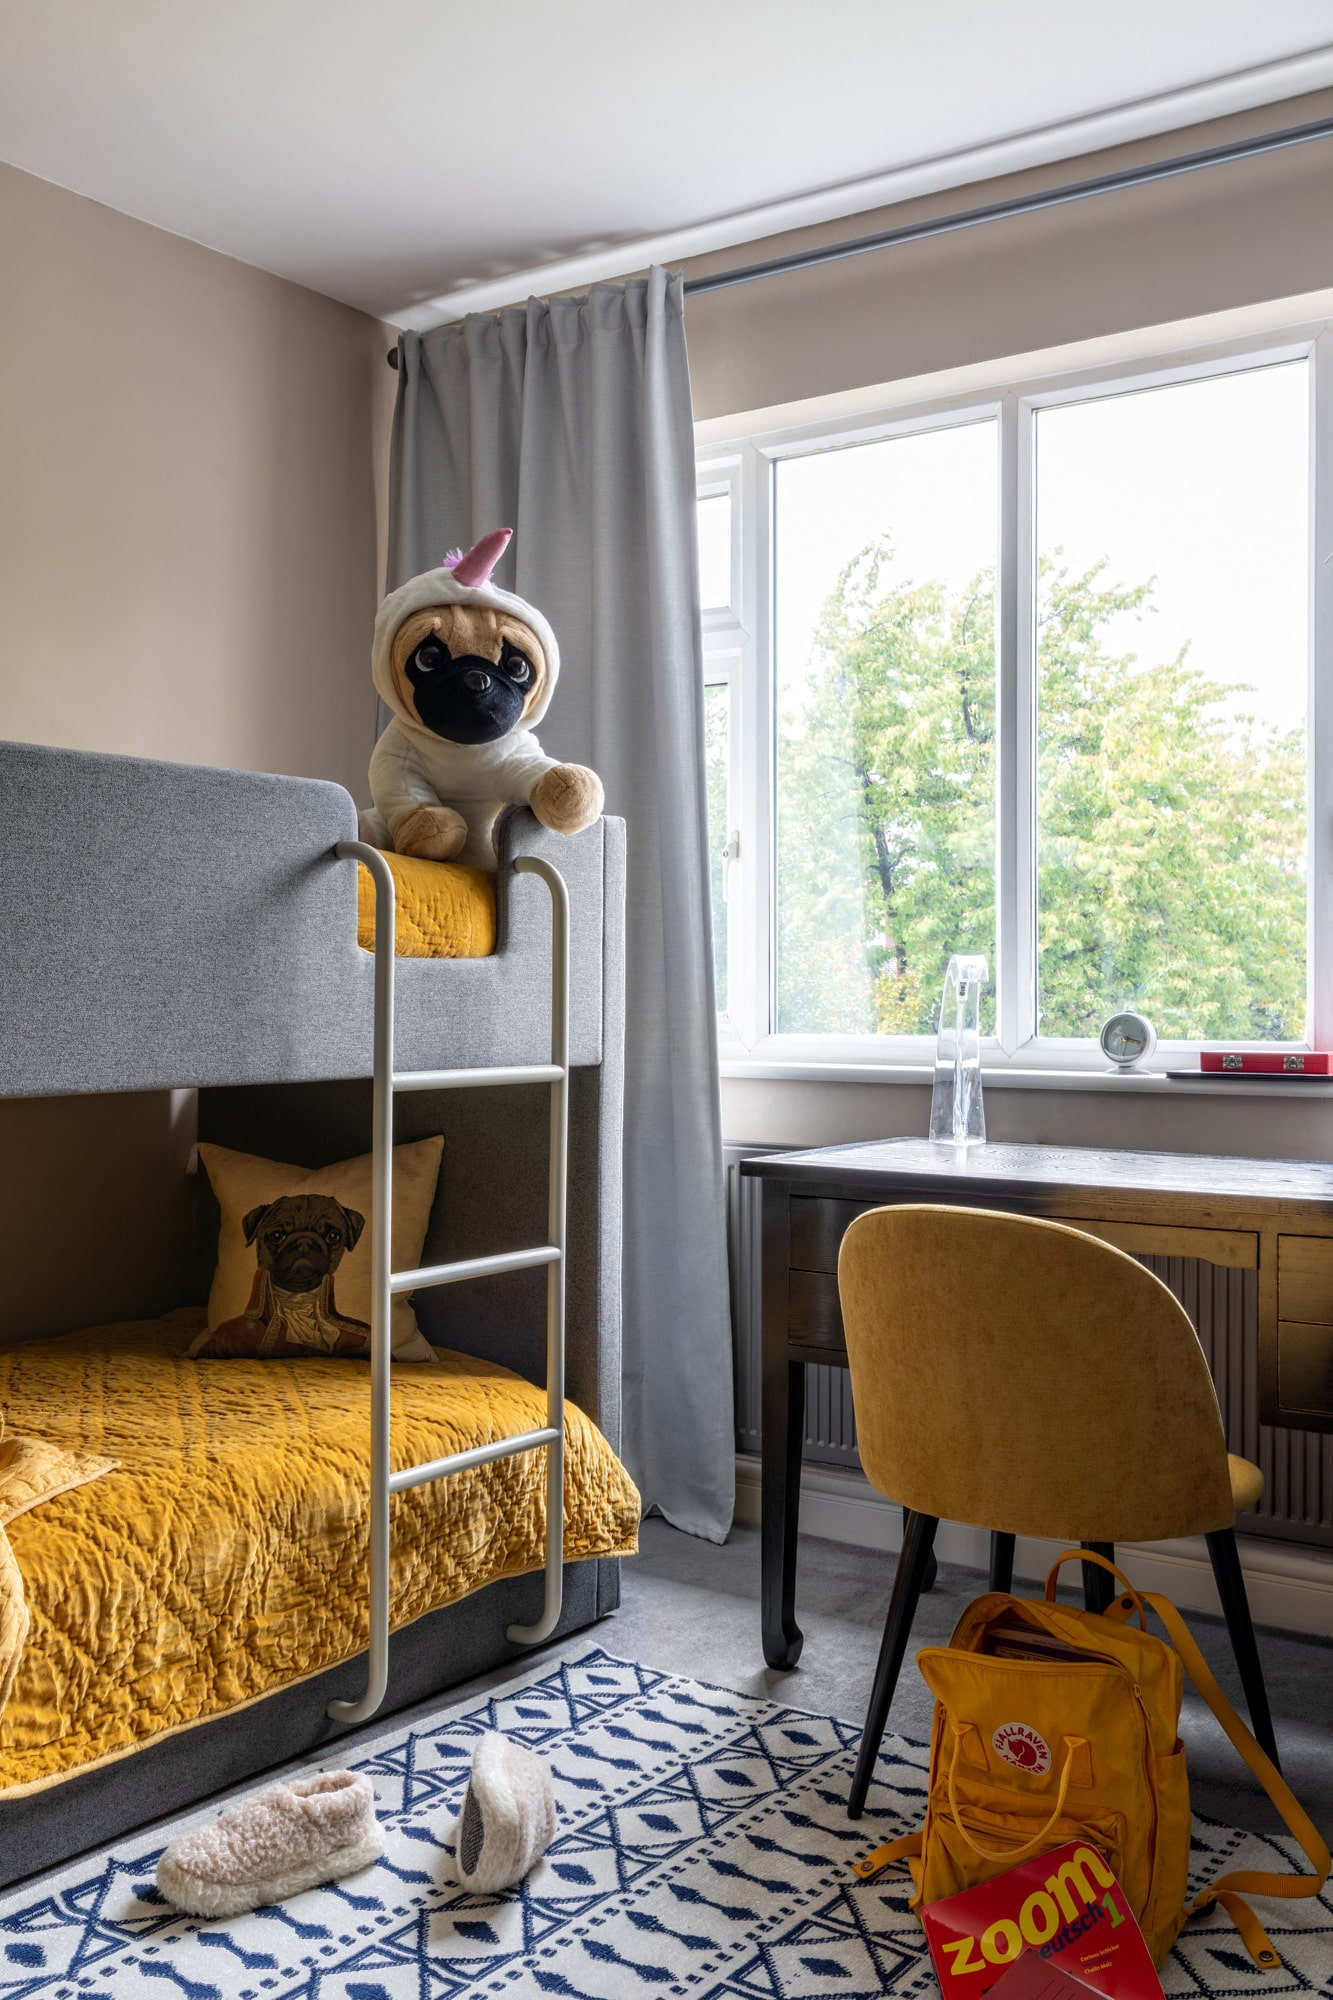 interior photo: kids room; bunk bed with yellow cover, a toy dog on the second level of the bulk bed; a desk and yellow chair